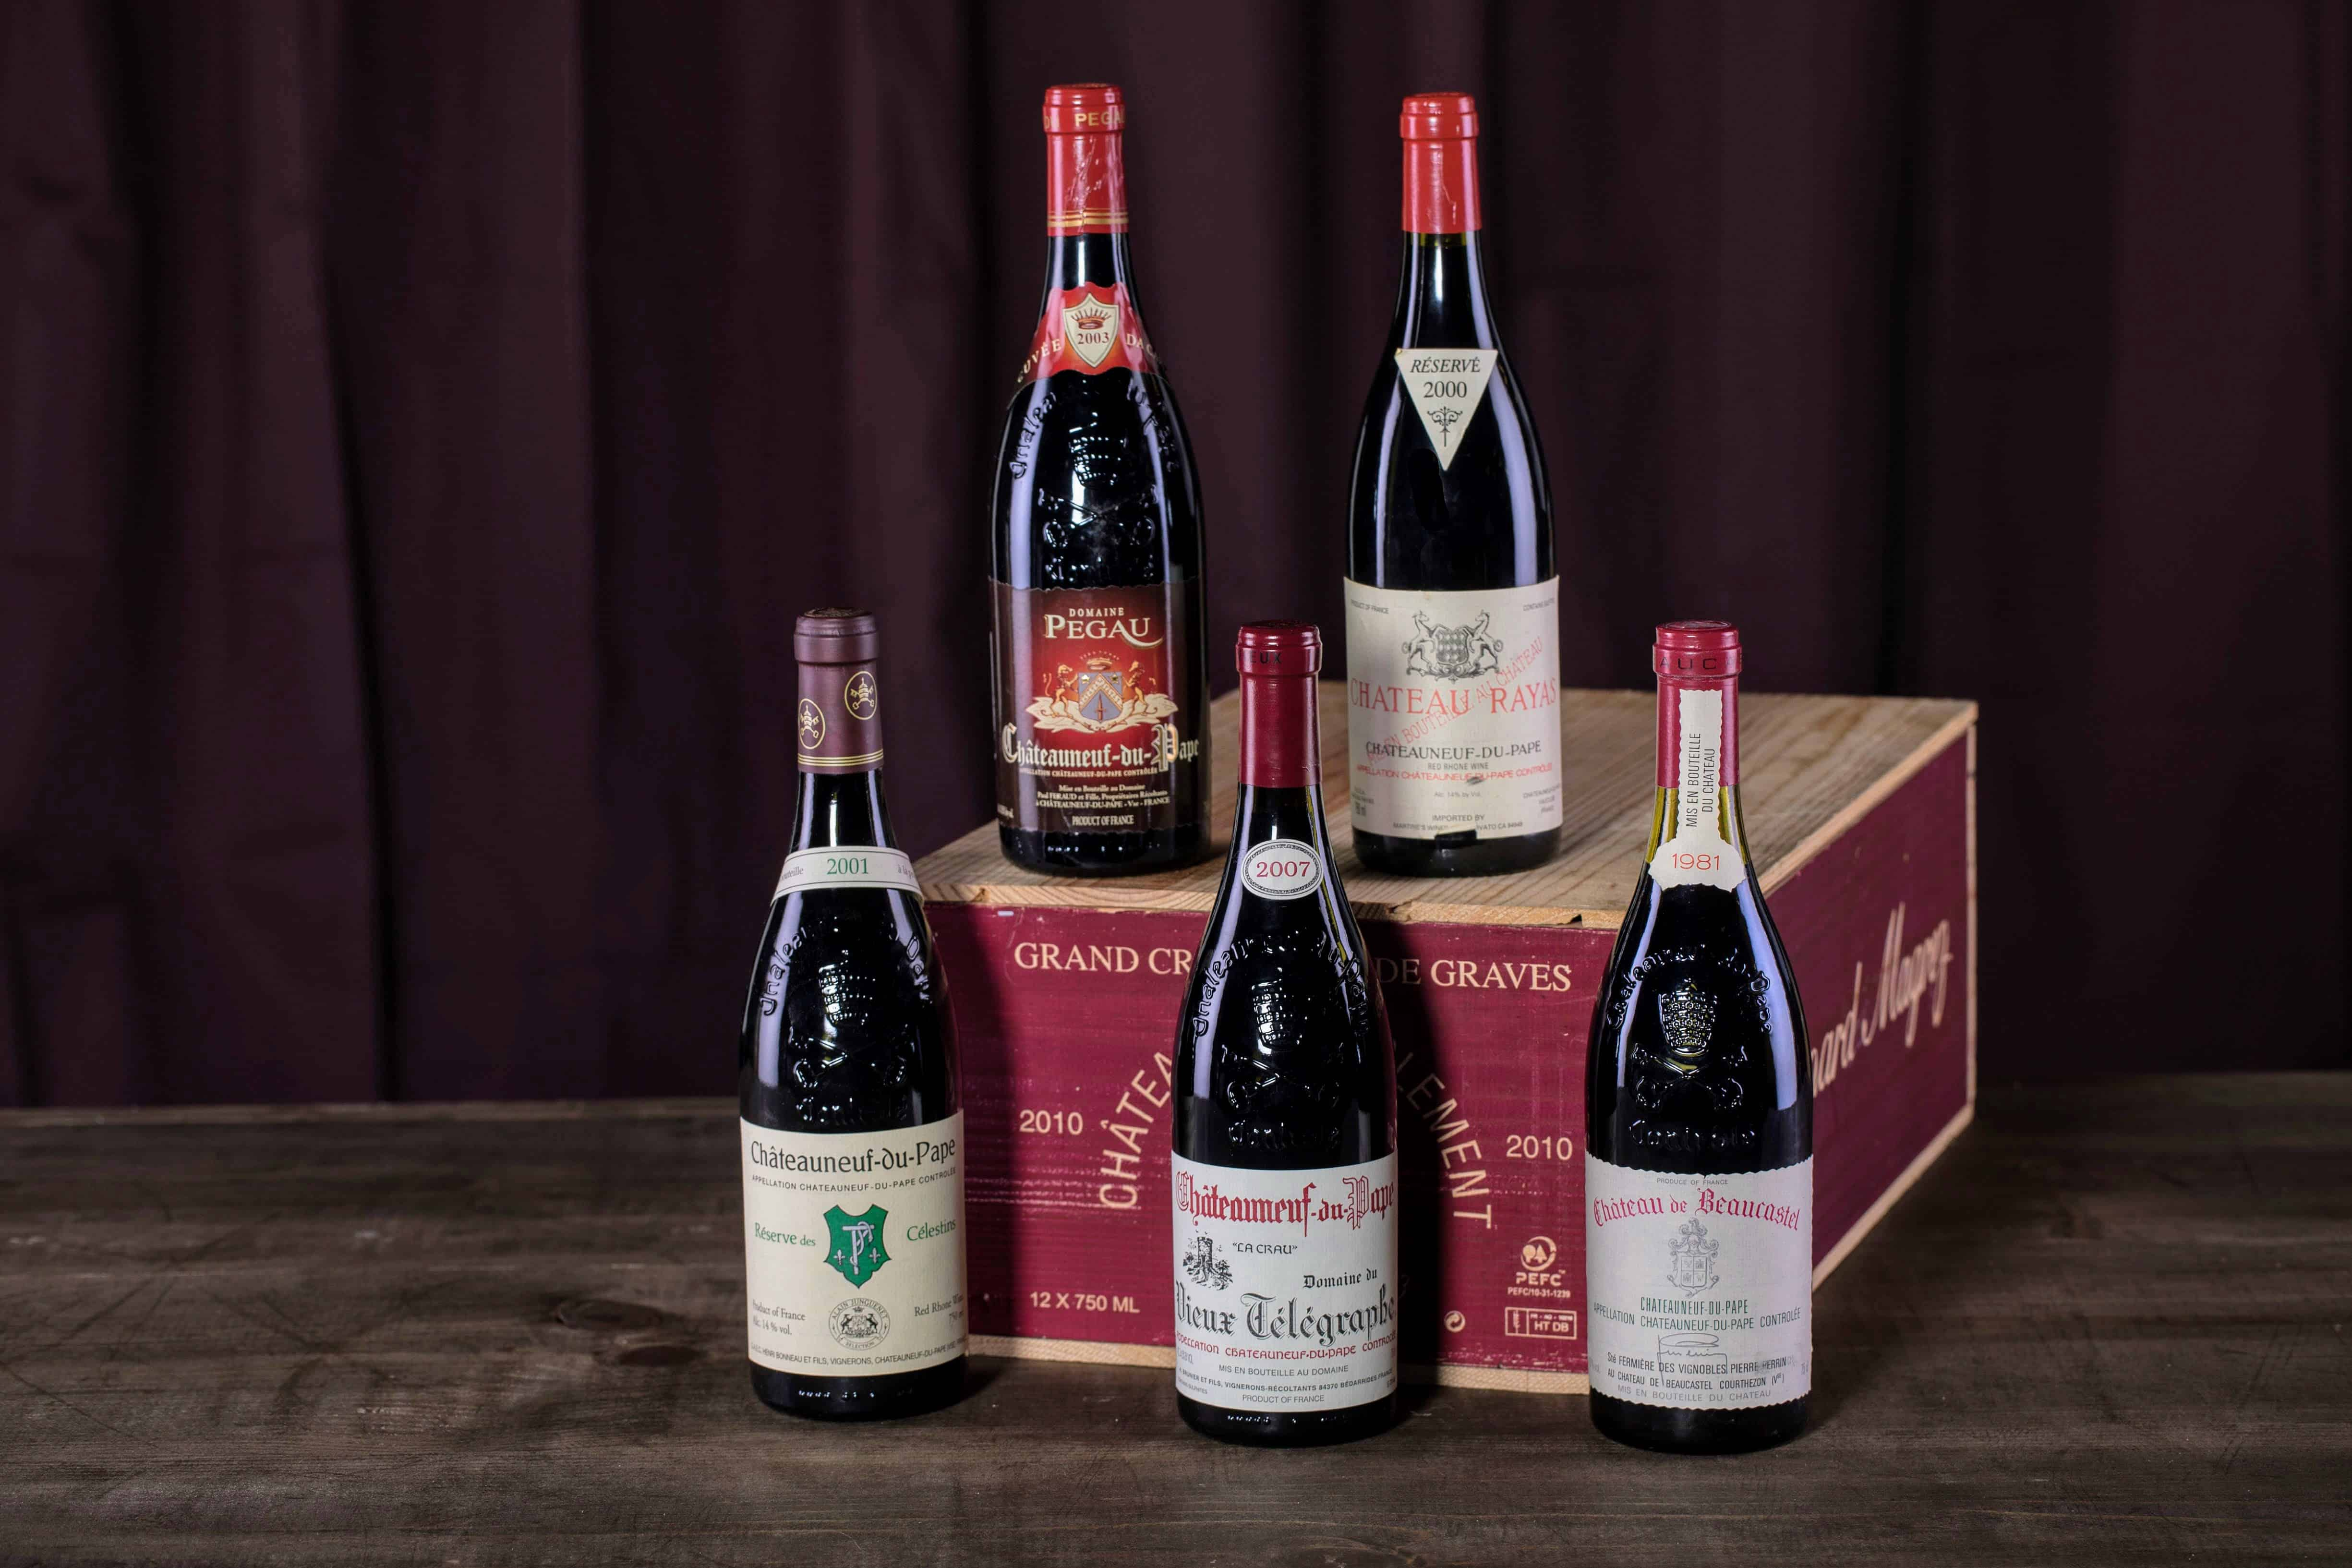 Some of the best Châteauneuf-du-Pape vintages made by iconic producers like Pegau.